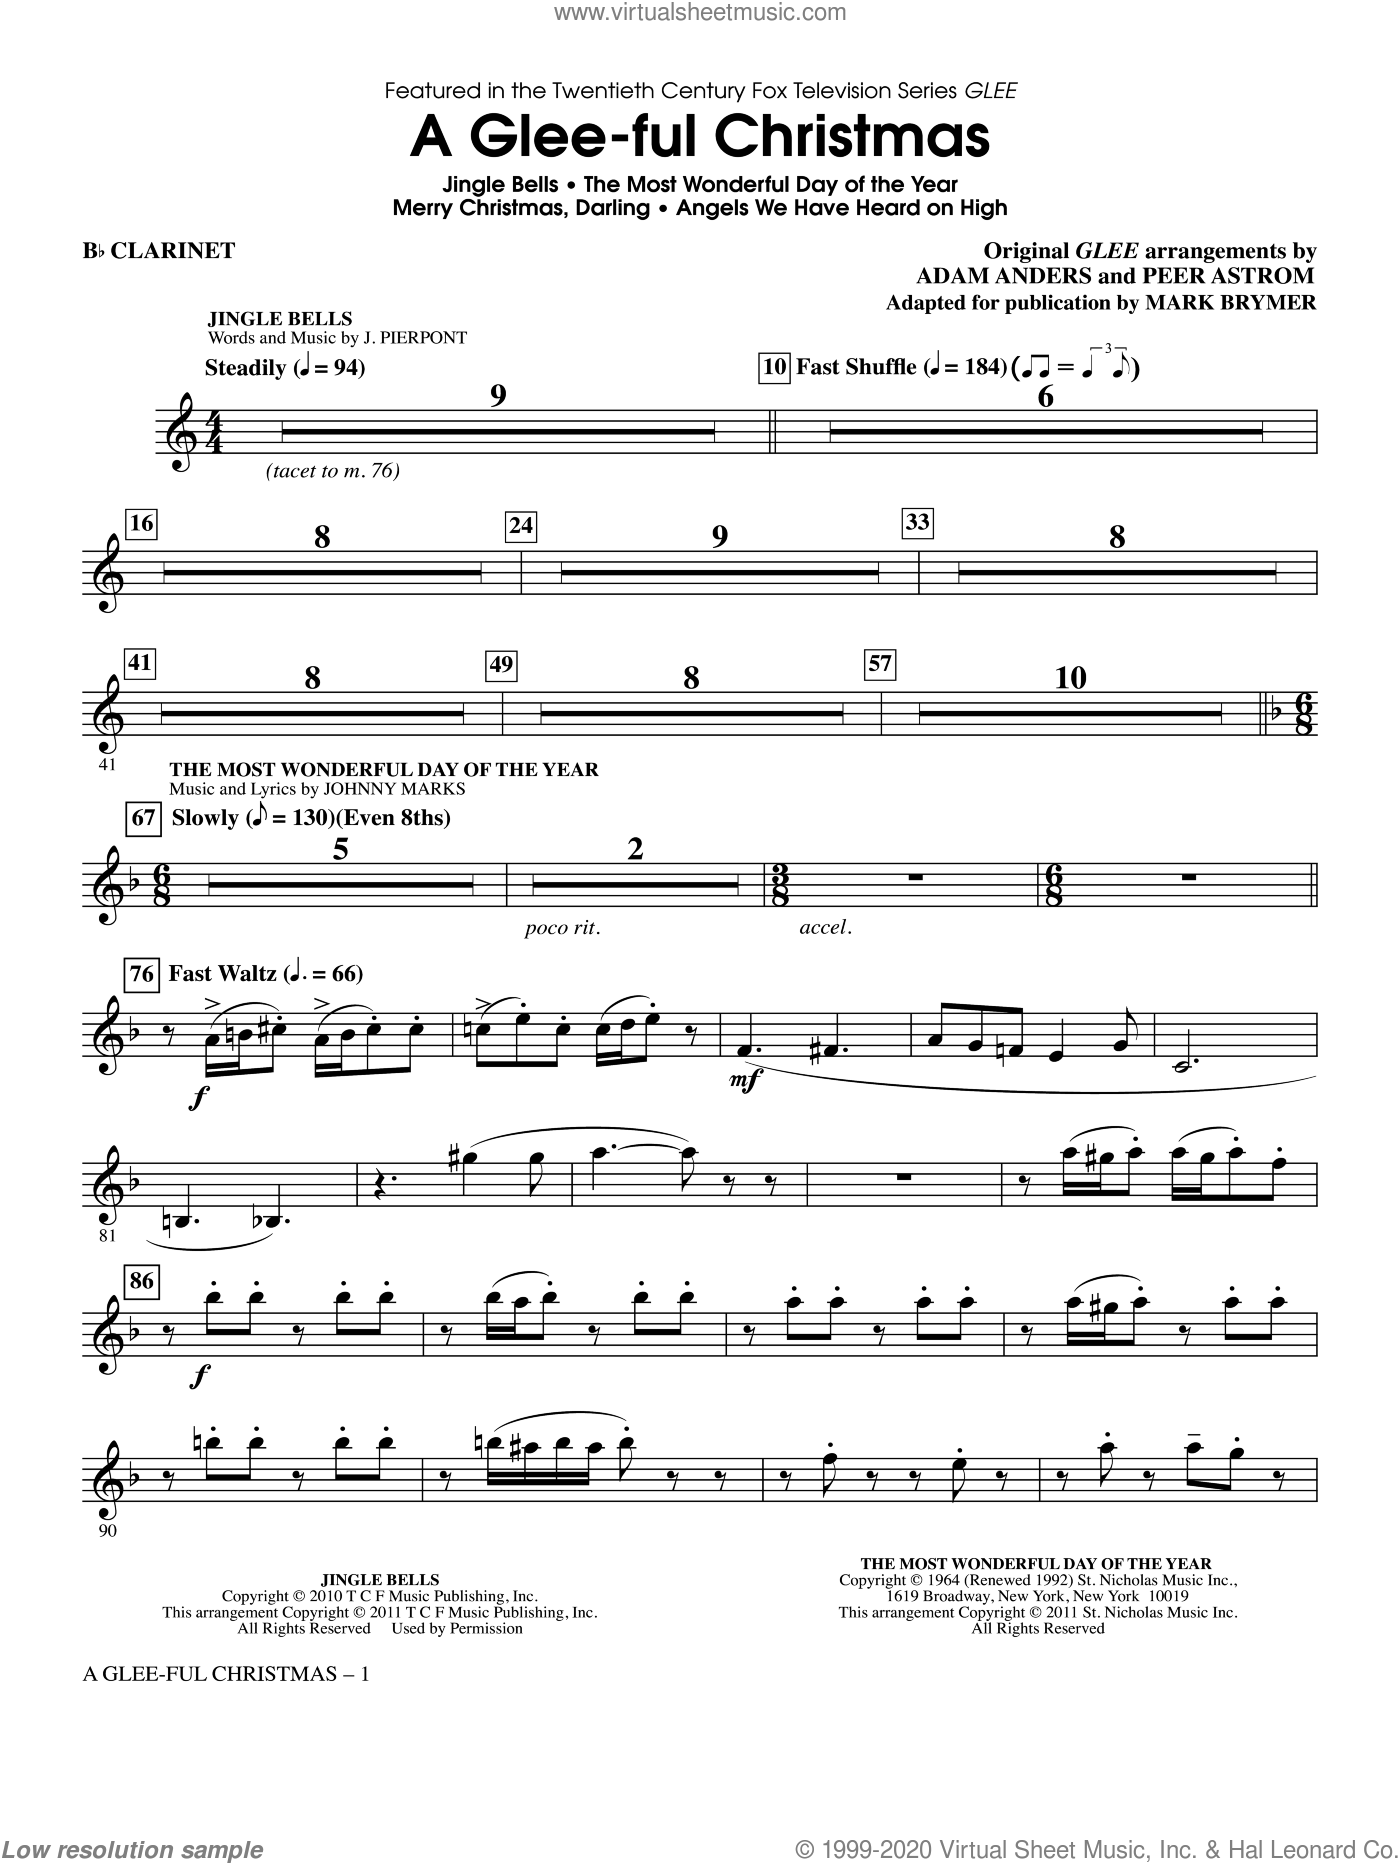 A Glee-ful Christmas (Choral Medley)(arr. Mark Brymer) sheet music for orchestra/band (Bb clarinet) by Mark Brymer, Adam Anders, Glee Cast, James Chadwick, Miscellaneous and Peer Astrom, intermediate skill level